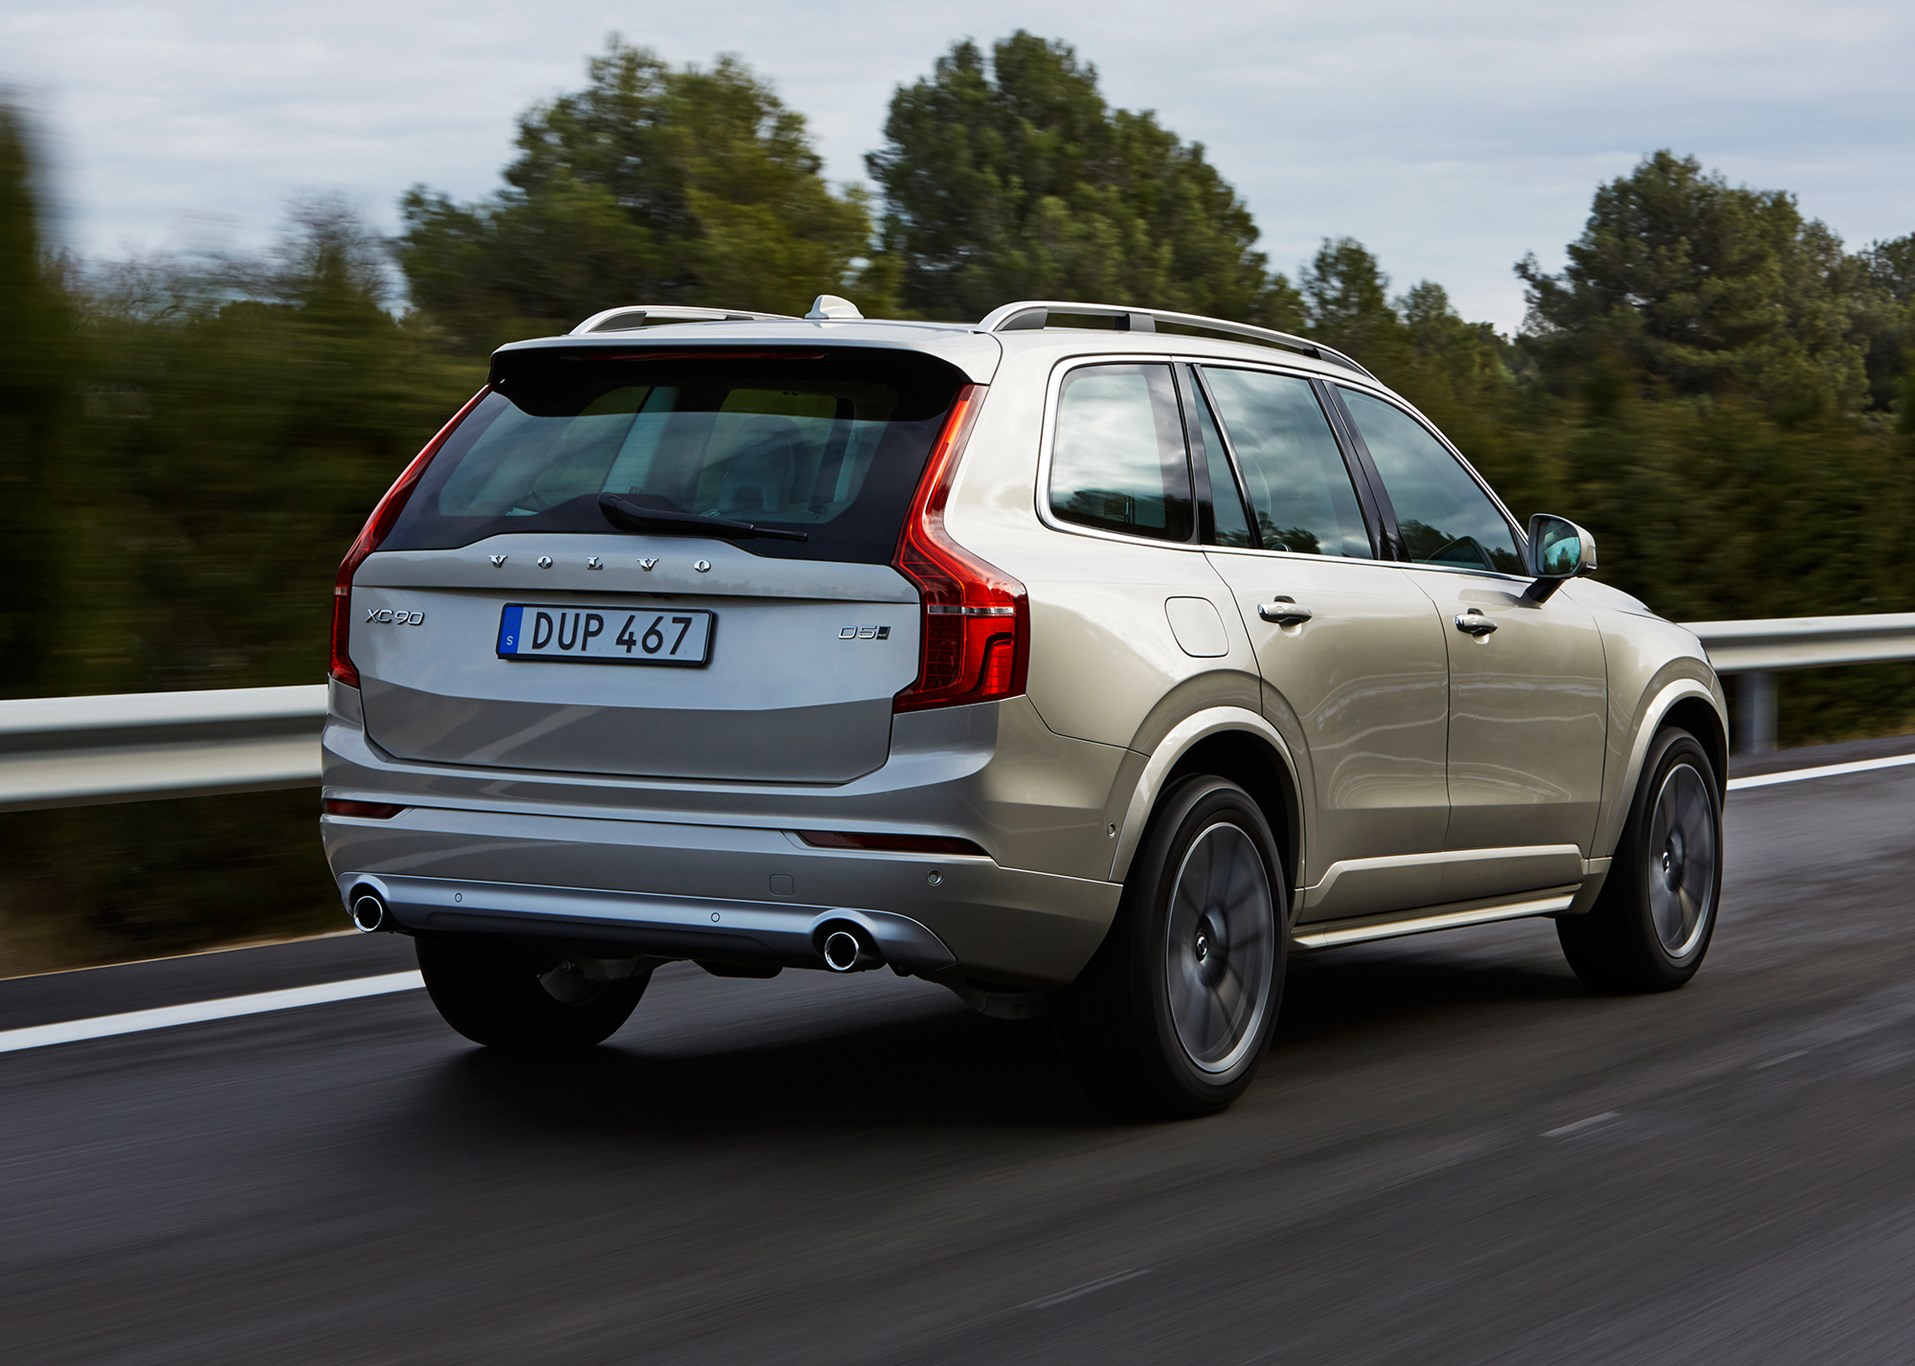 Volvo xc90 d5 2015 review car magazine car reviews the new volvo xc90 rear less progressive than front of xc90 publicscrutiny Image collections